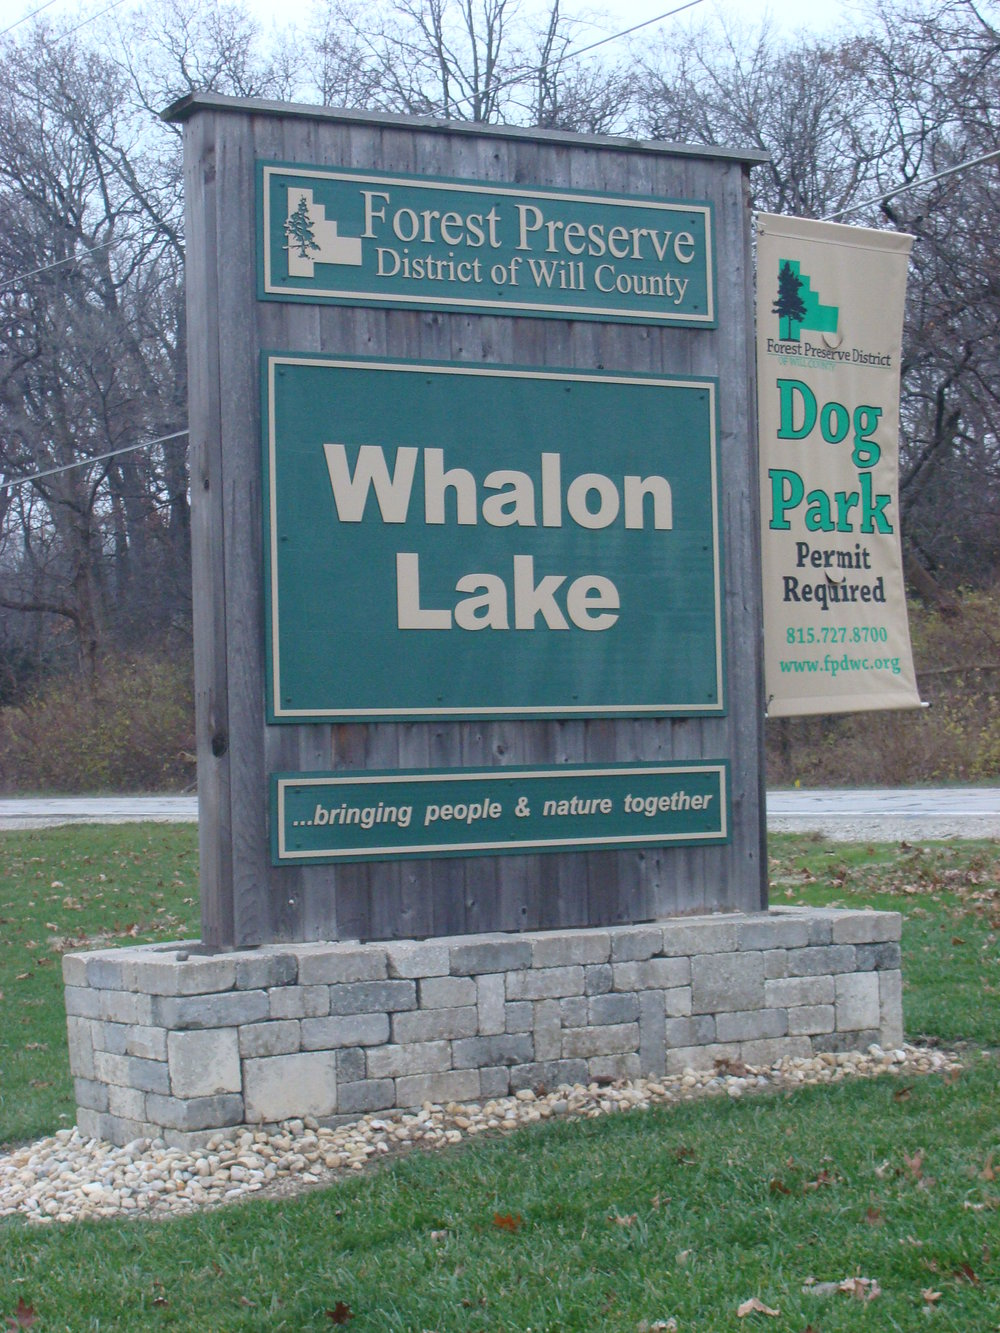 whalon lake sign.jpg